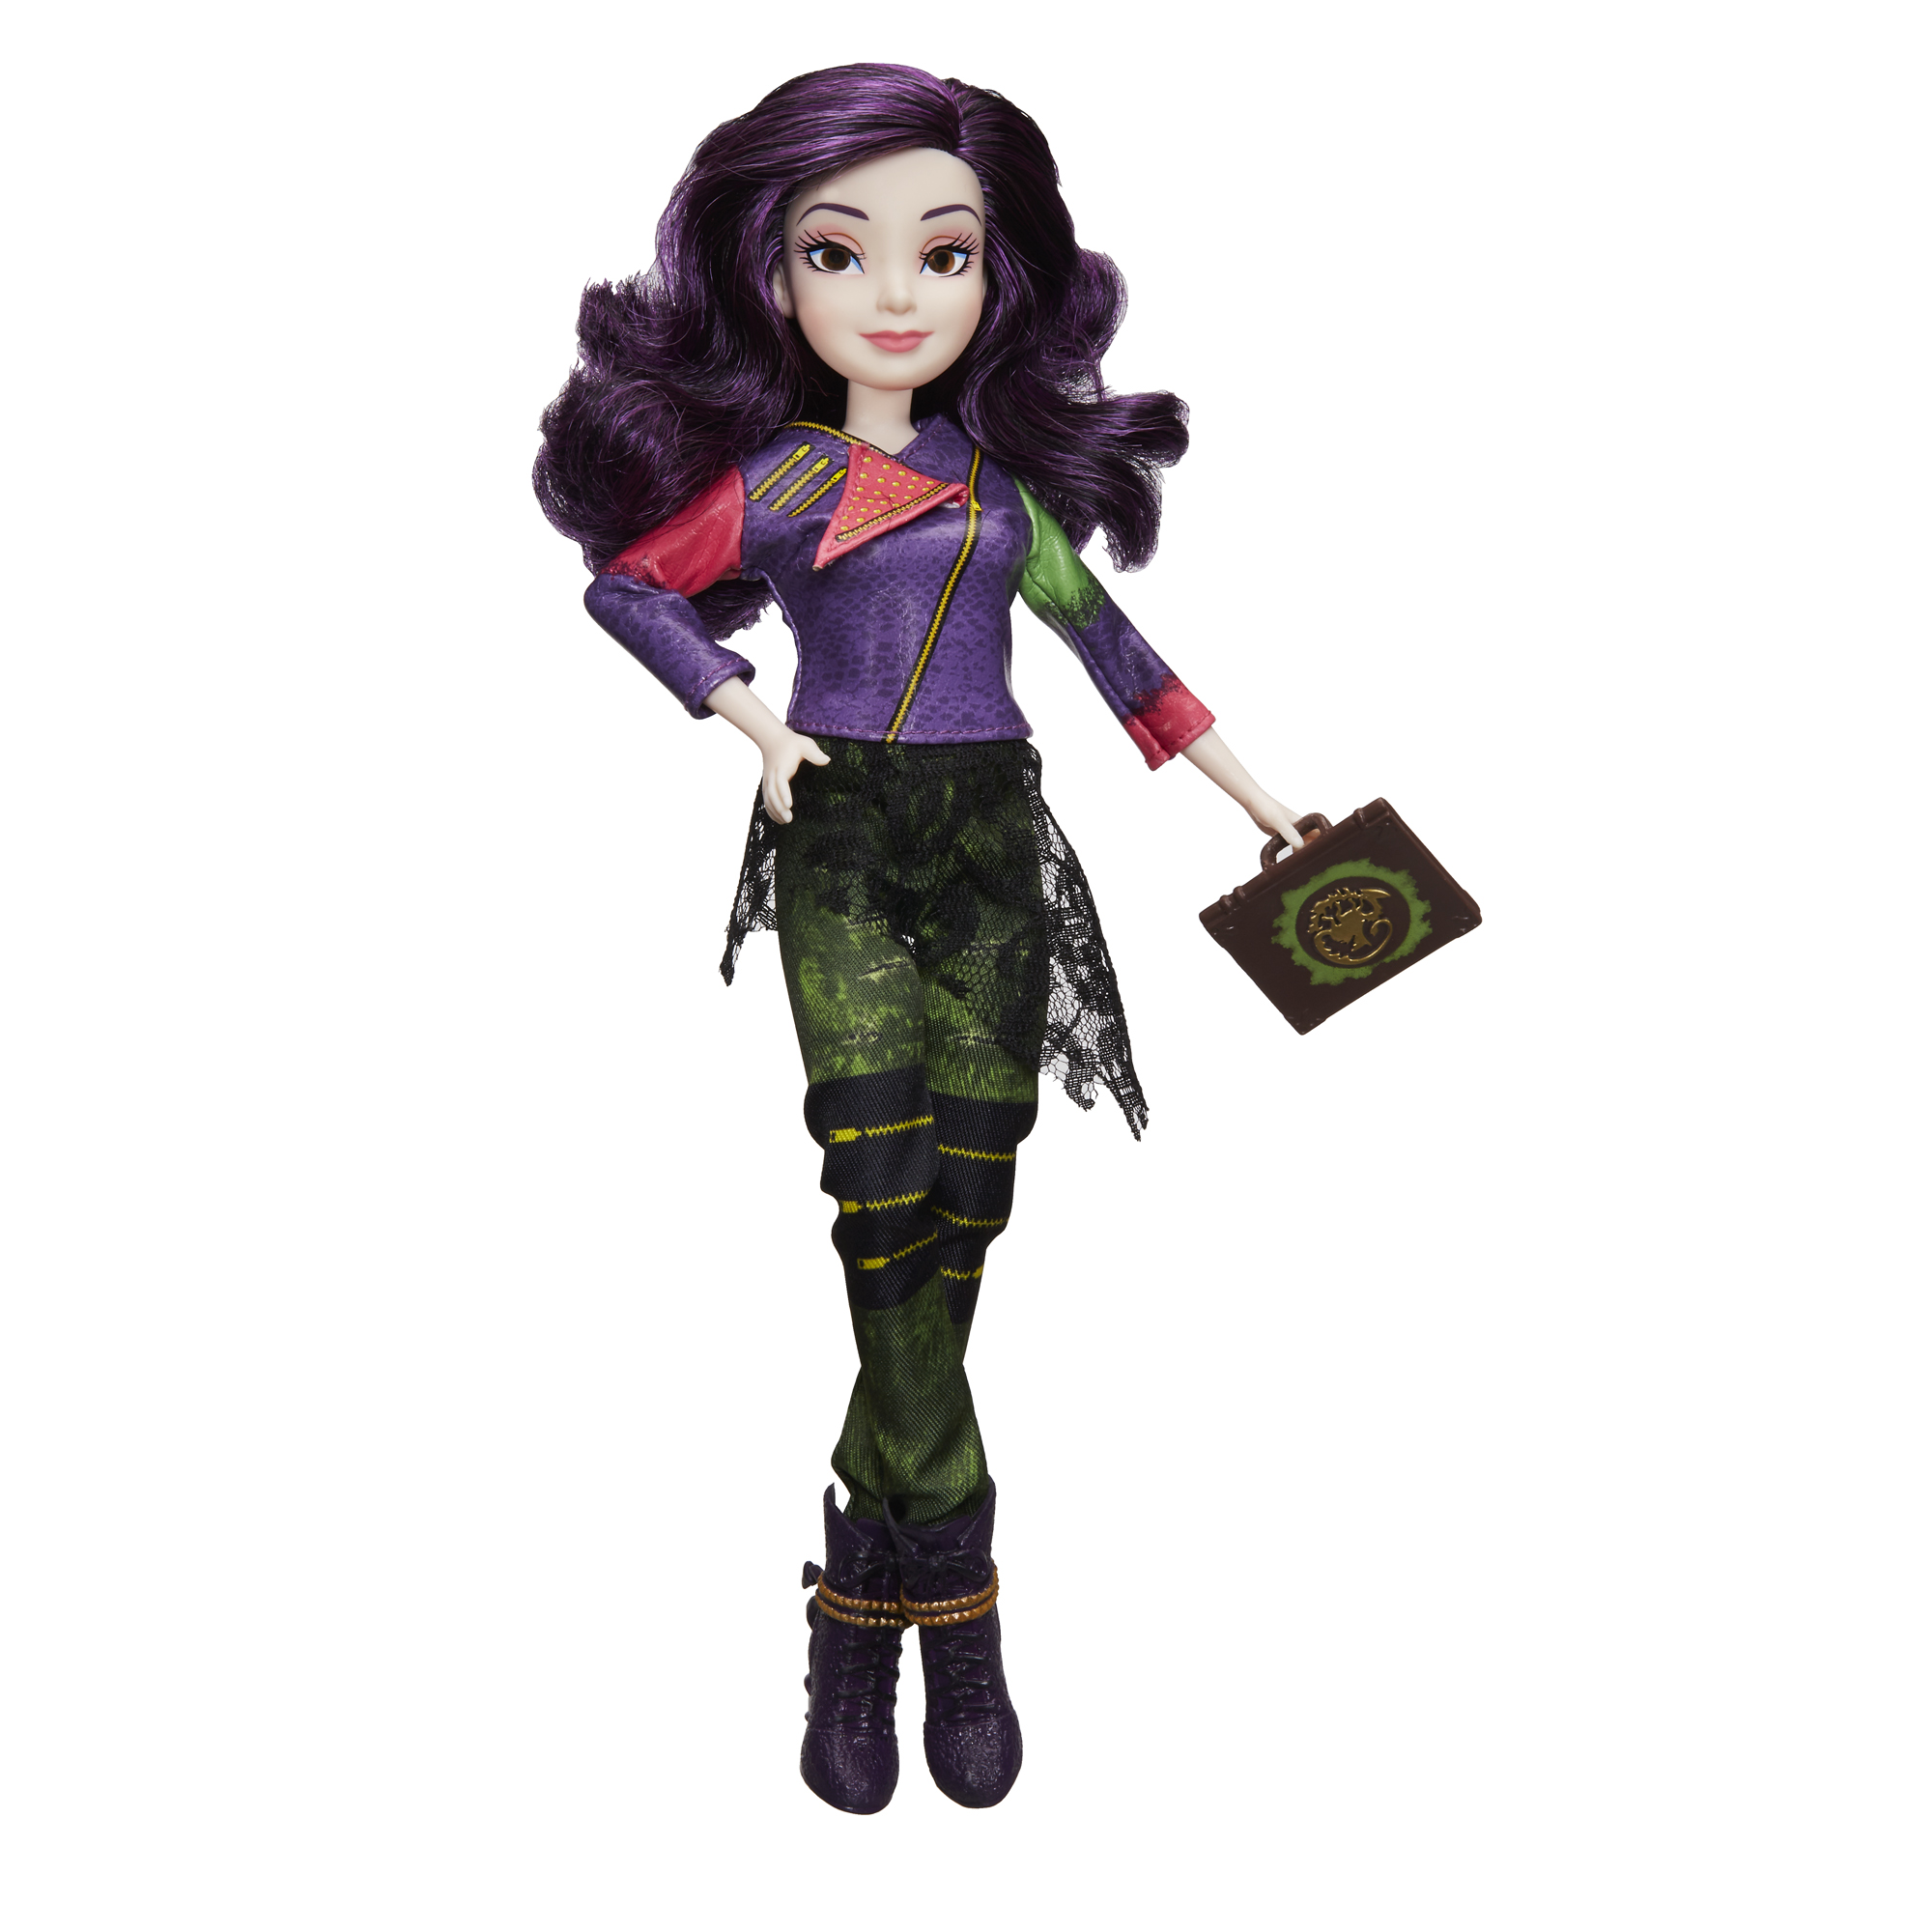 Disney Descendants Wicked Ways Mal by Hasbro